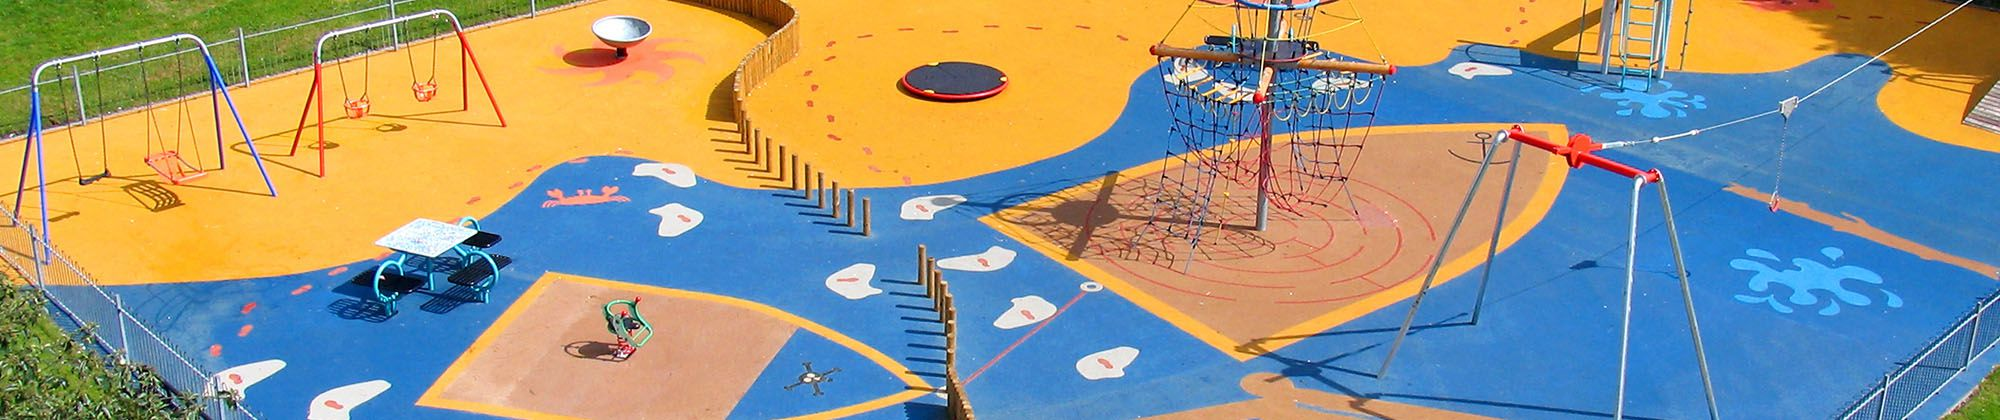 Pirate-themed-playground-surfacing